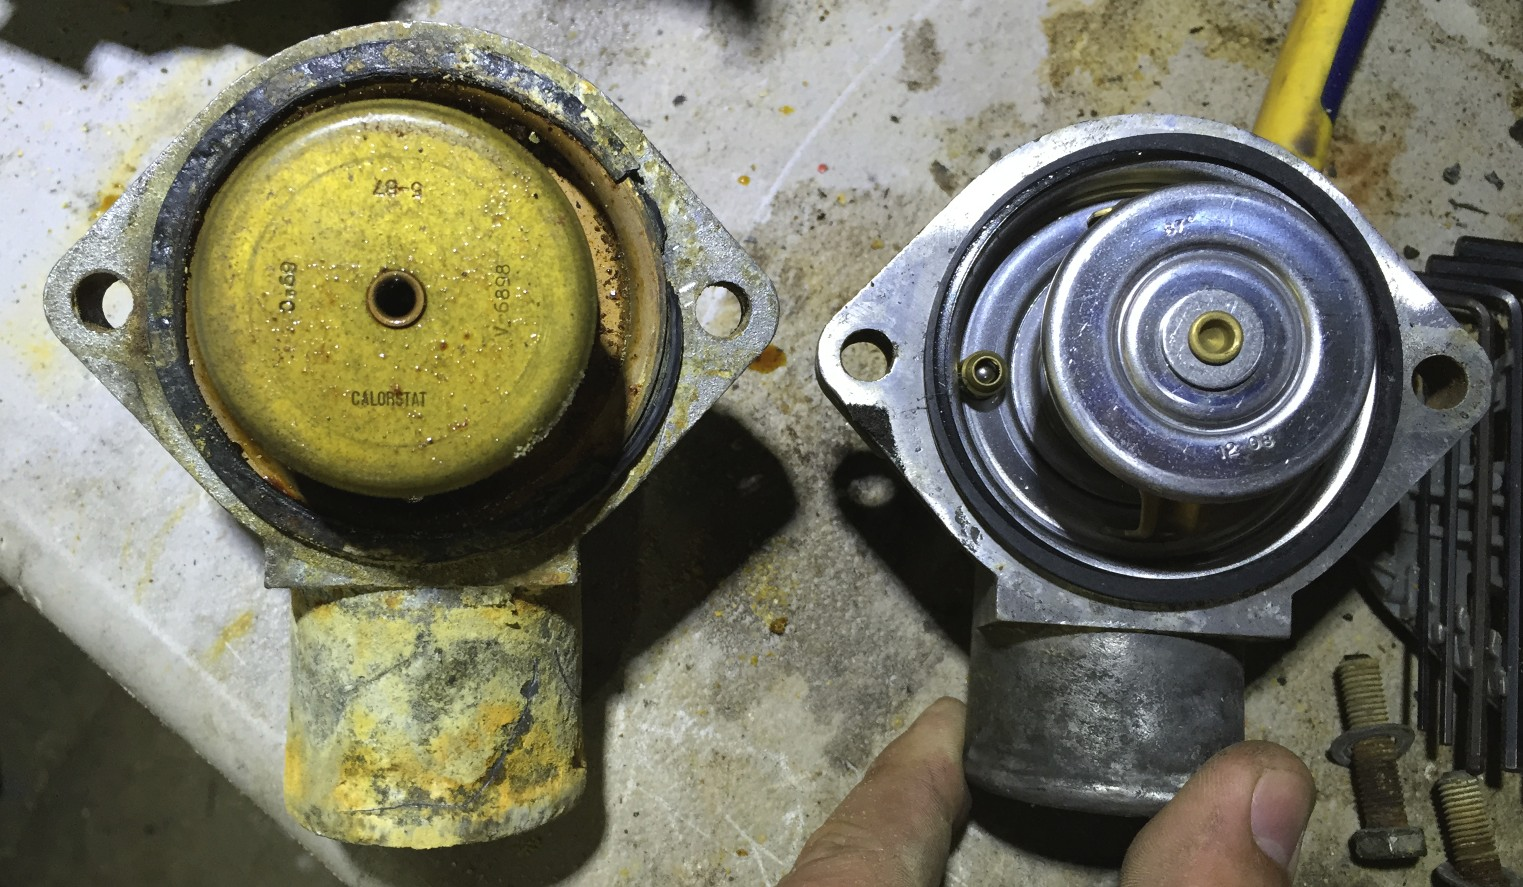 The extremely dirty 3.0L thermostat and housing (left) and the clean 2.8L thermostat (right).